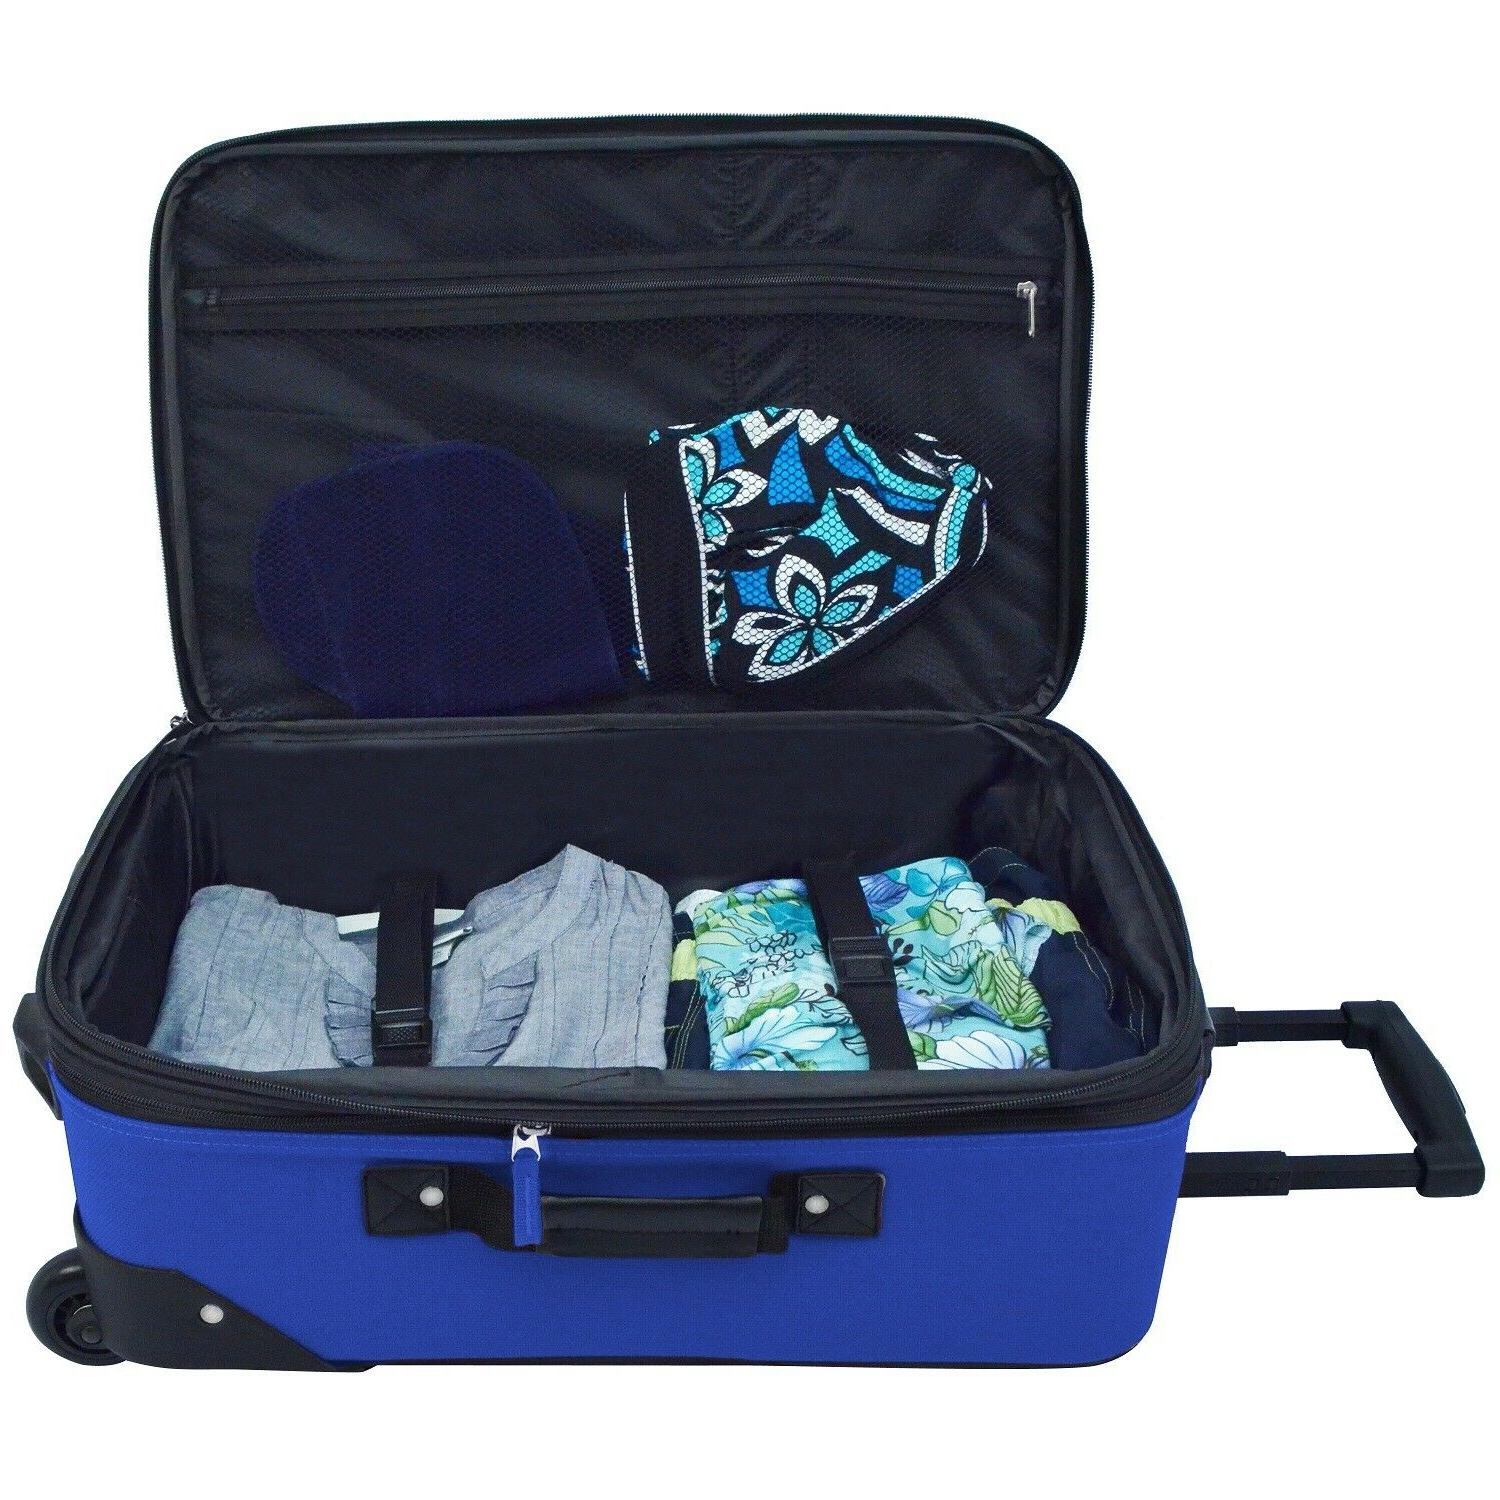 Carry-on Lightweight Expandable Suitcase Bag